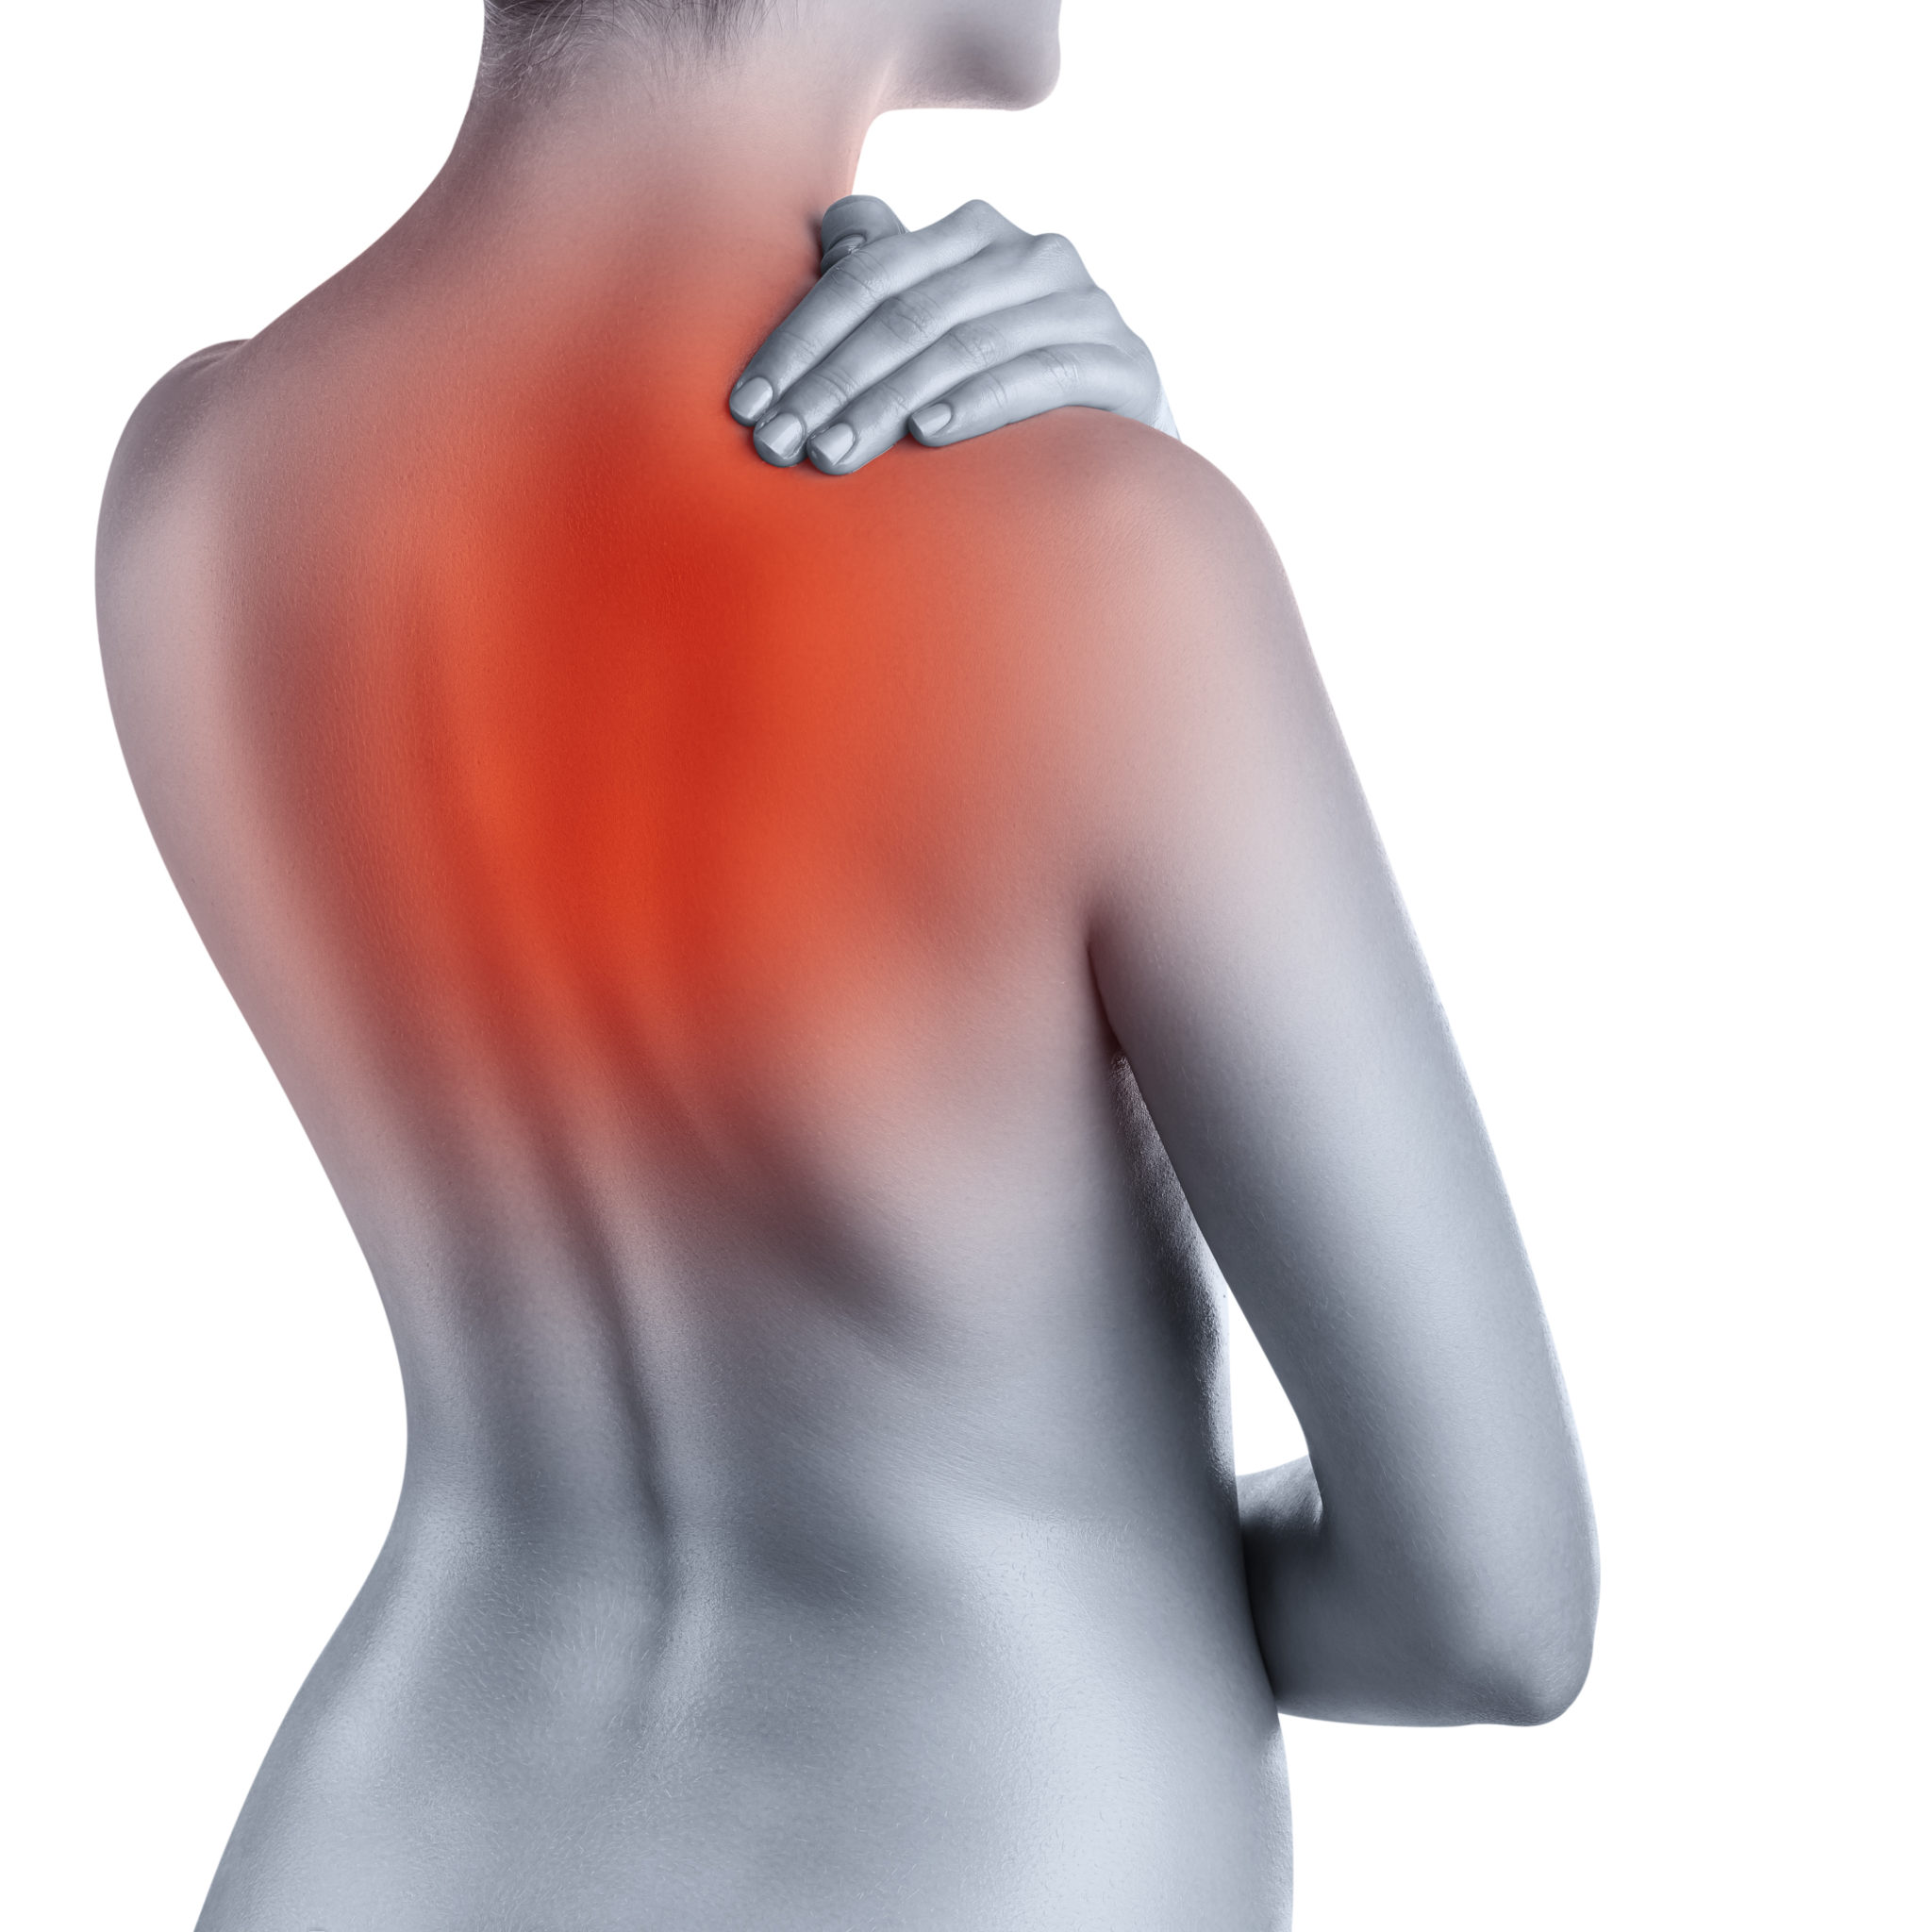 Non-surgical Treatments For Lower Back Pain